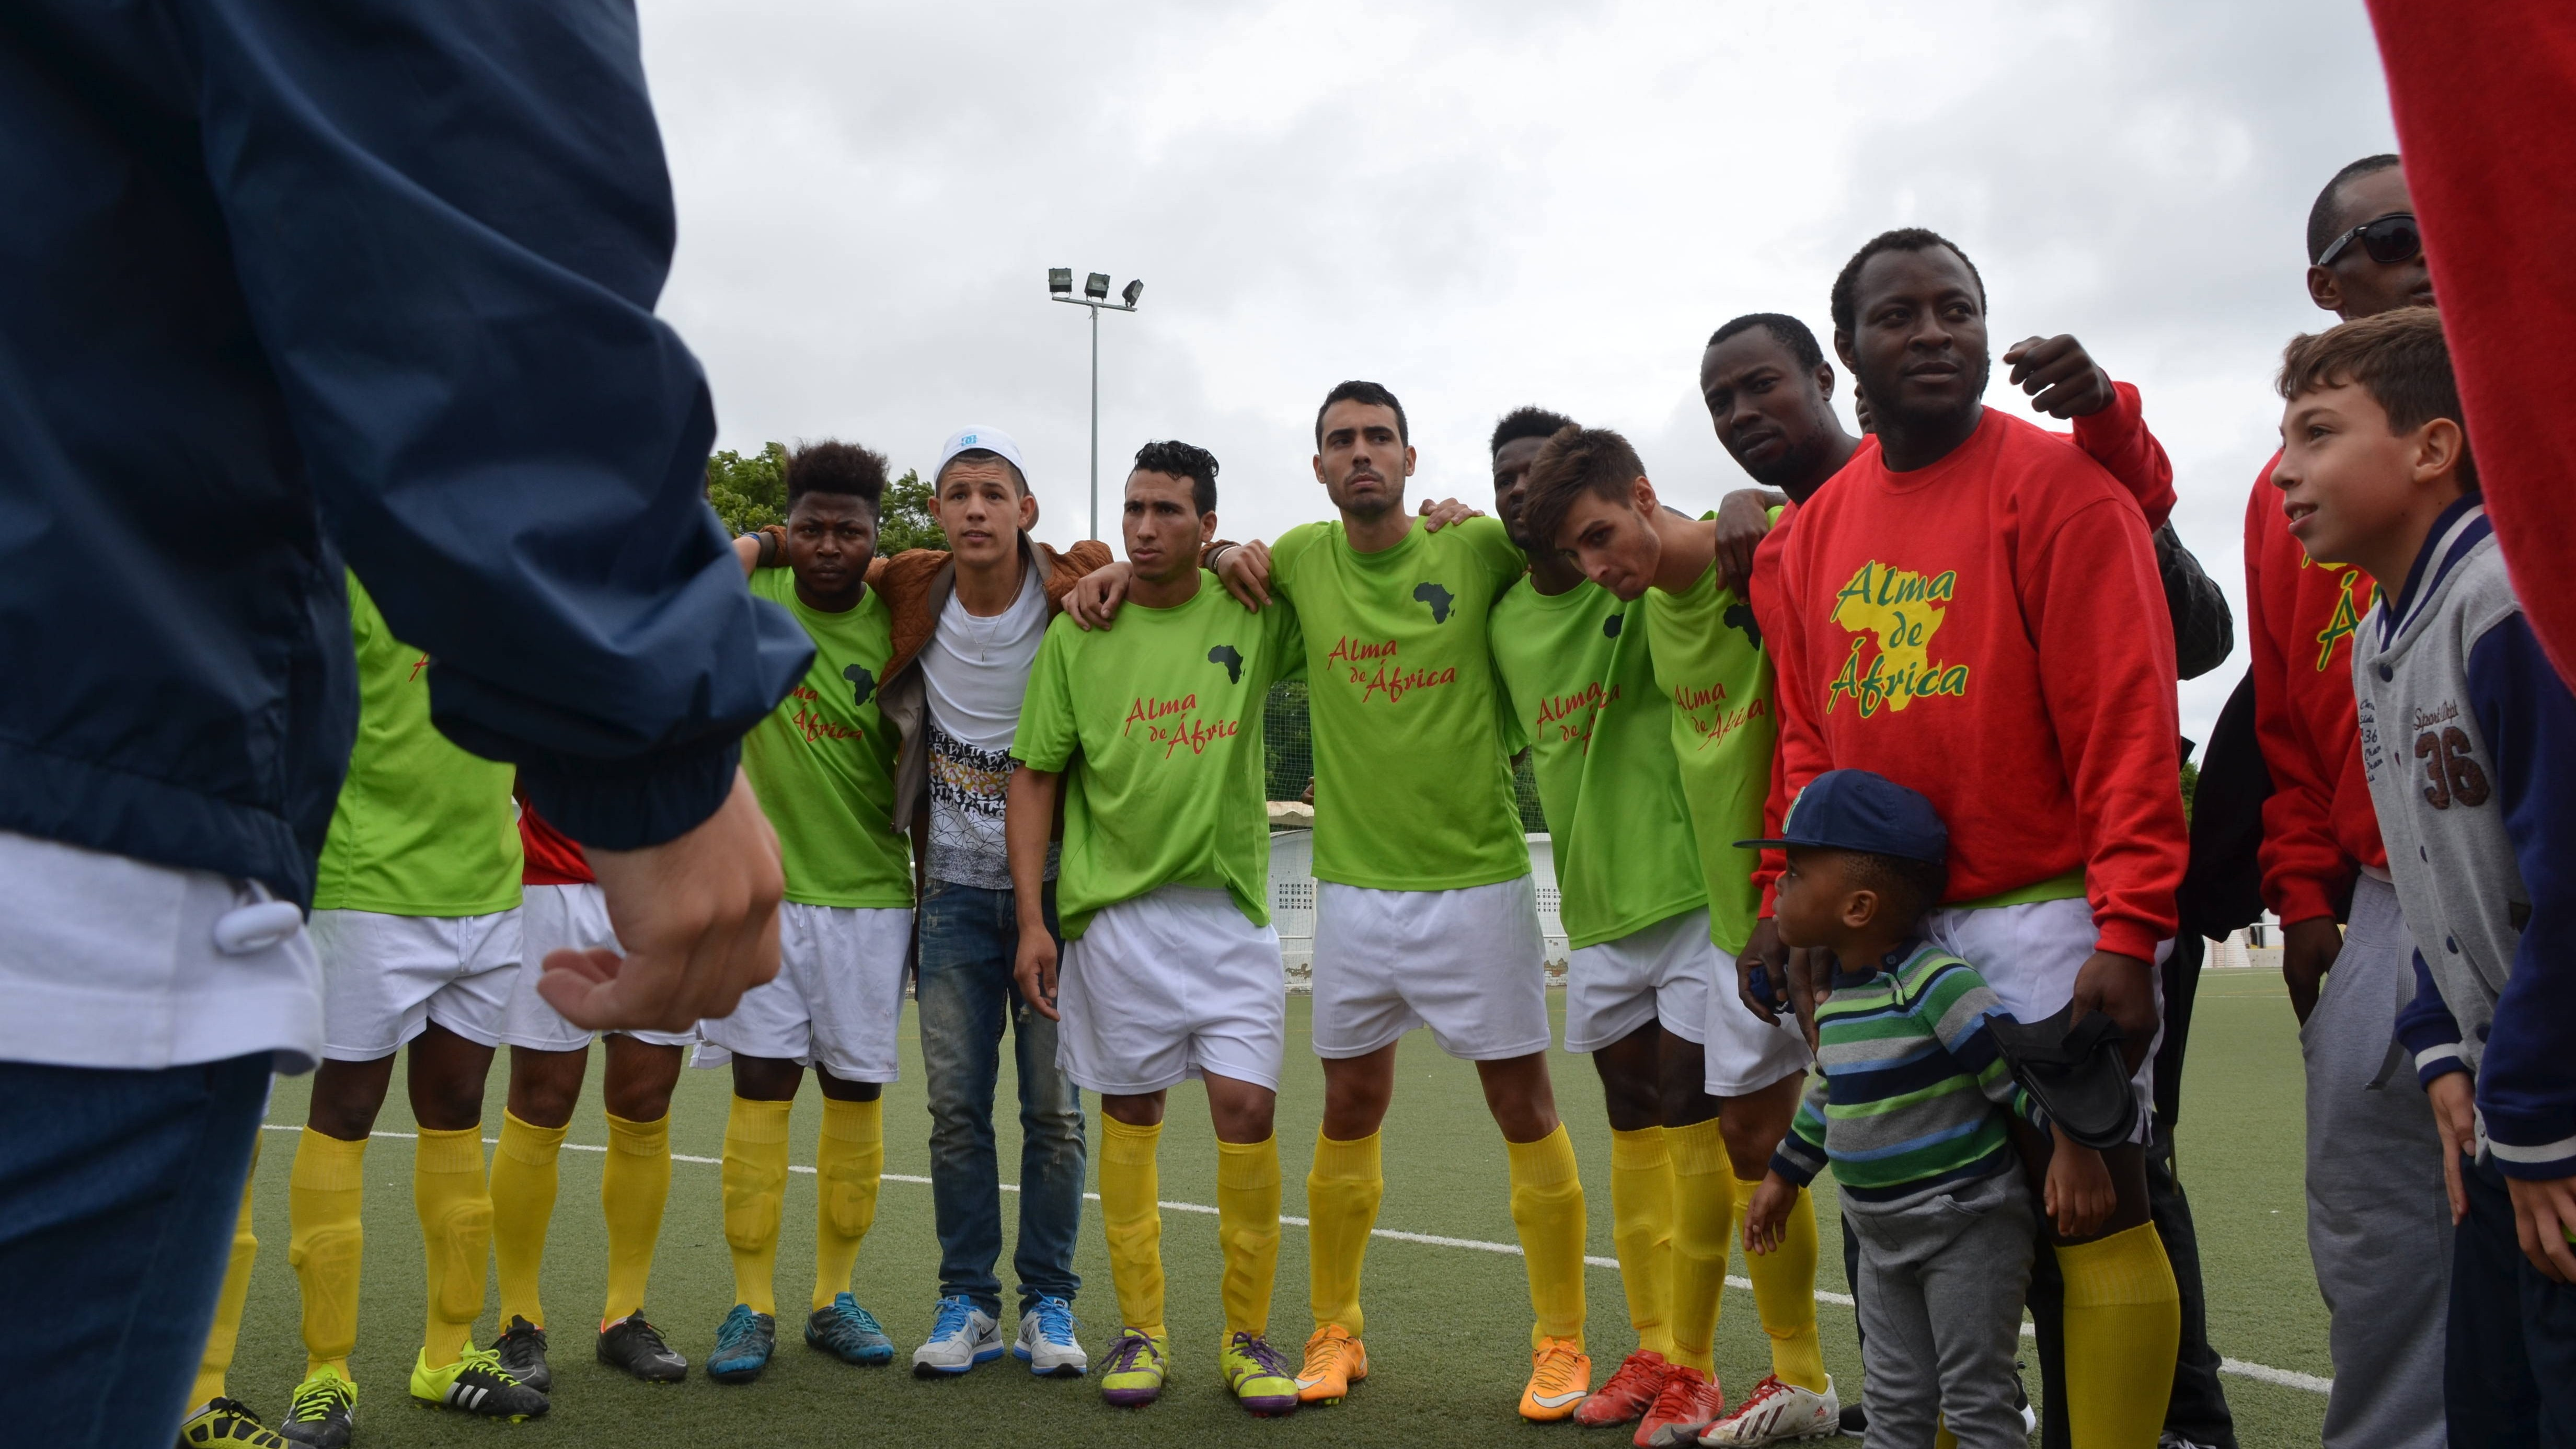 African Immigrants Find a Home in a Spanish Soccer Club